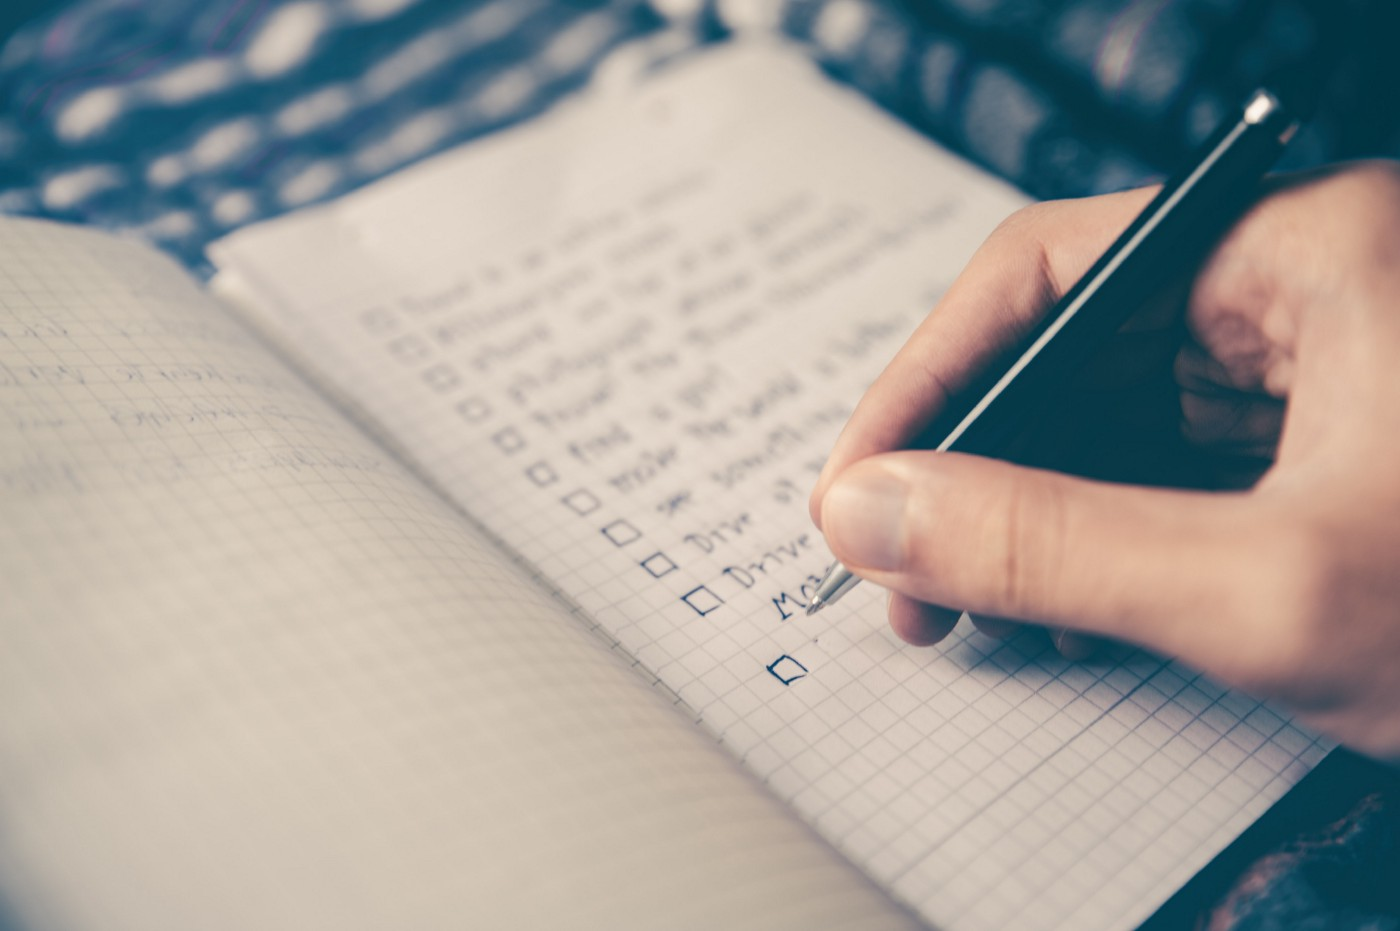 A list can be a powerful tool. Here, someone makes a list in their notebook.